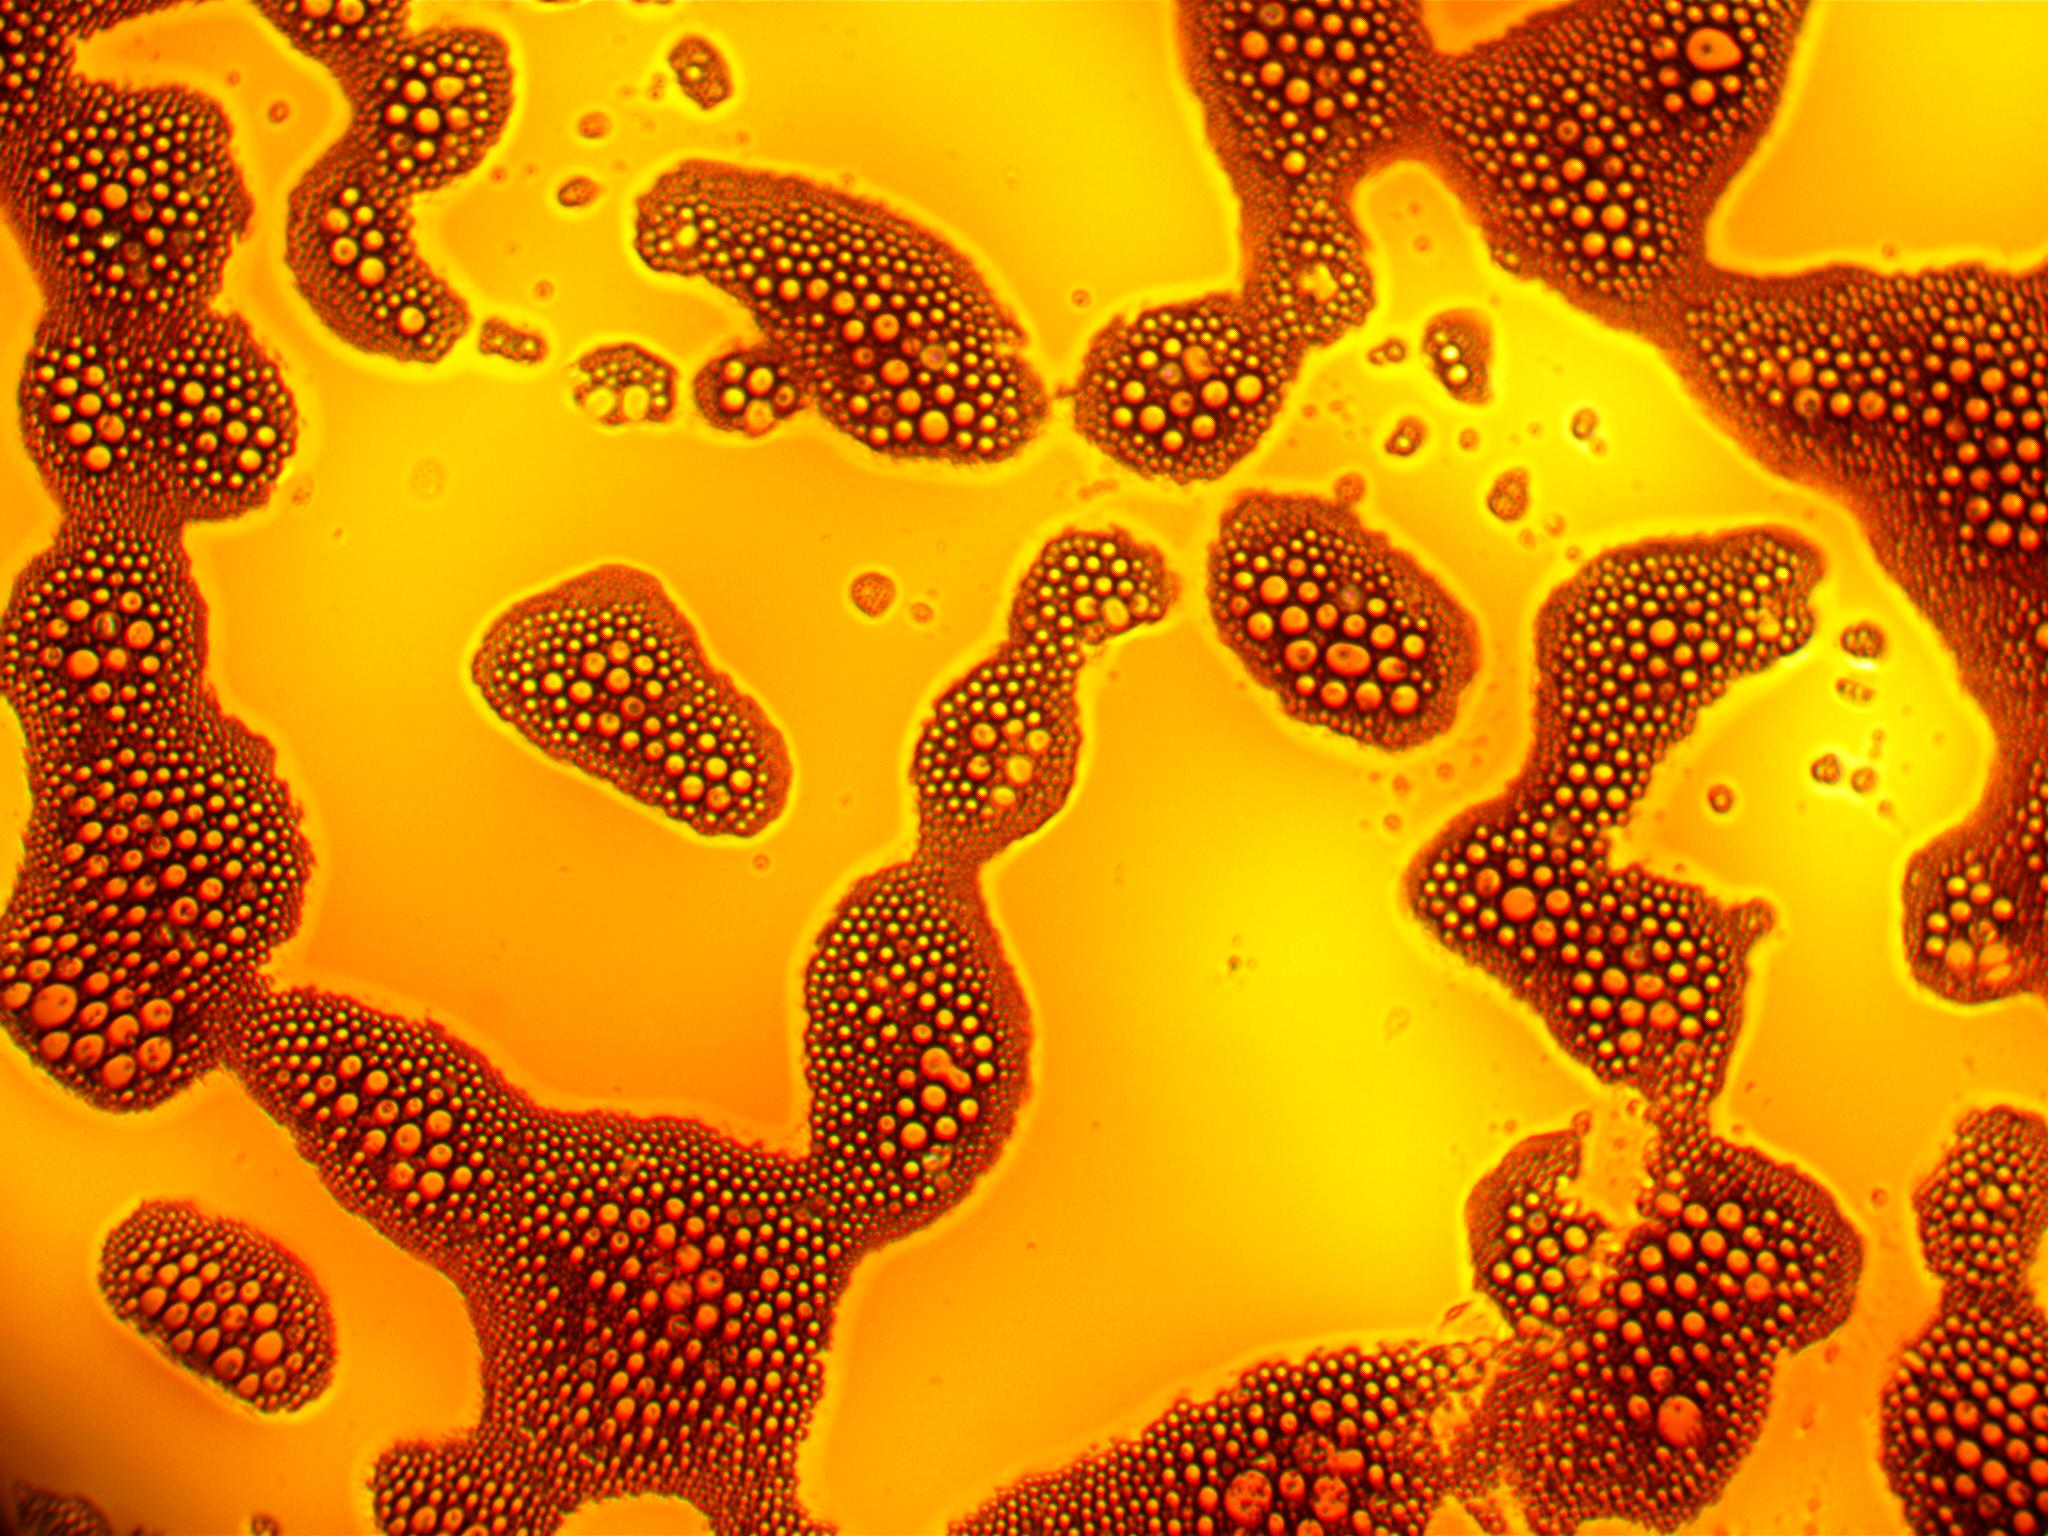 Microscope Image of Oil and Water Emulsion